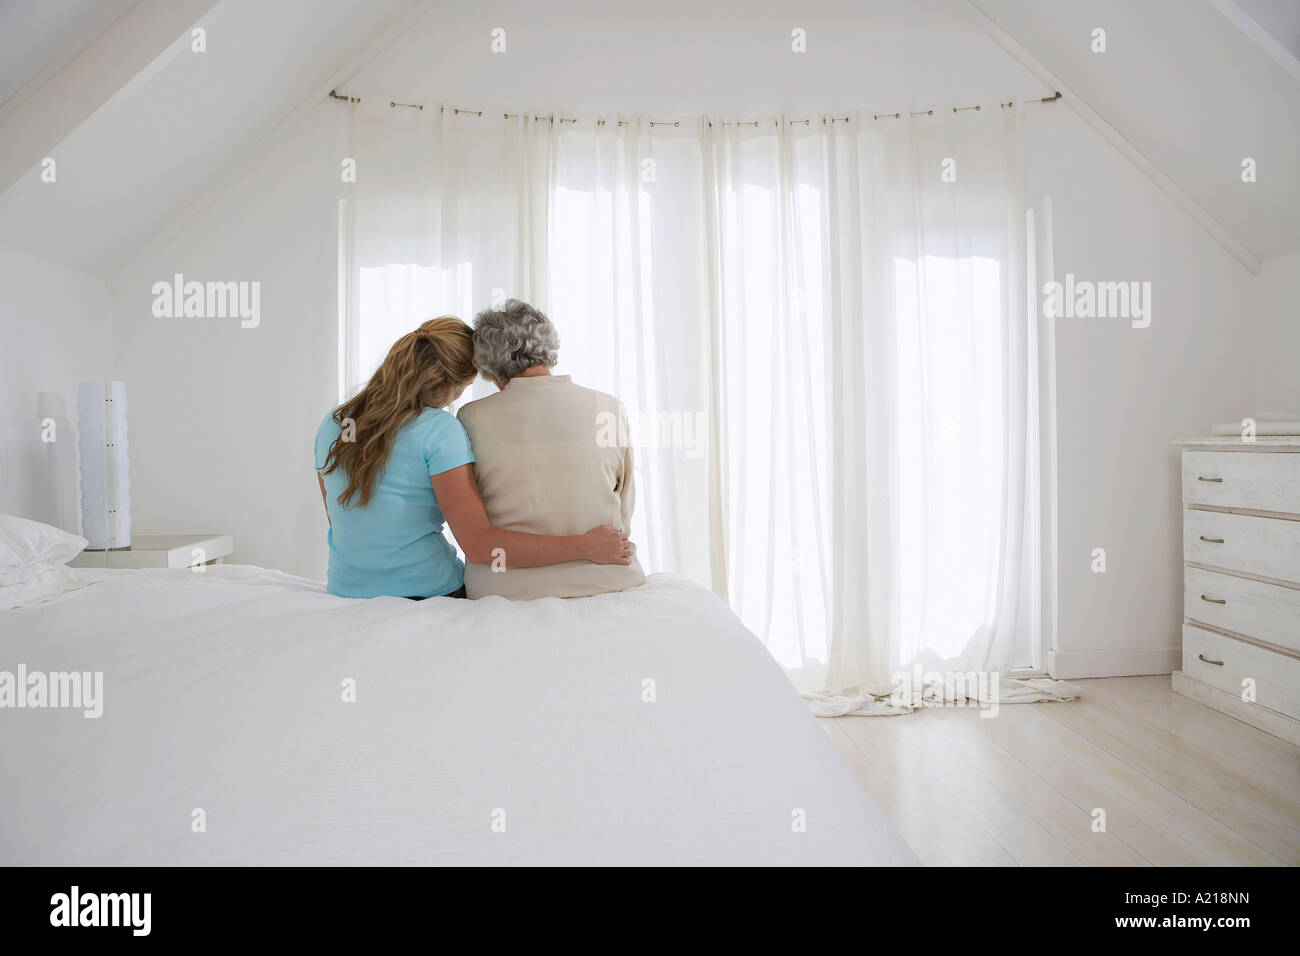 Rear view of adult daughter with her arm around mother in white bedroom - Stock Image